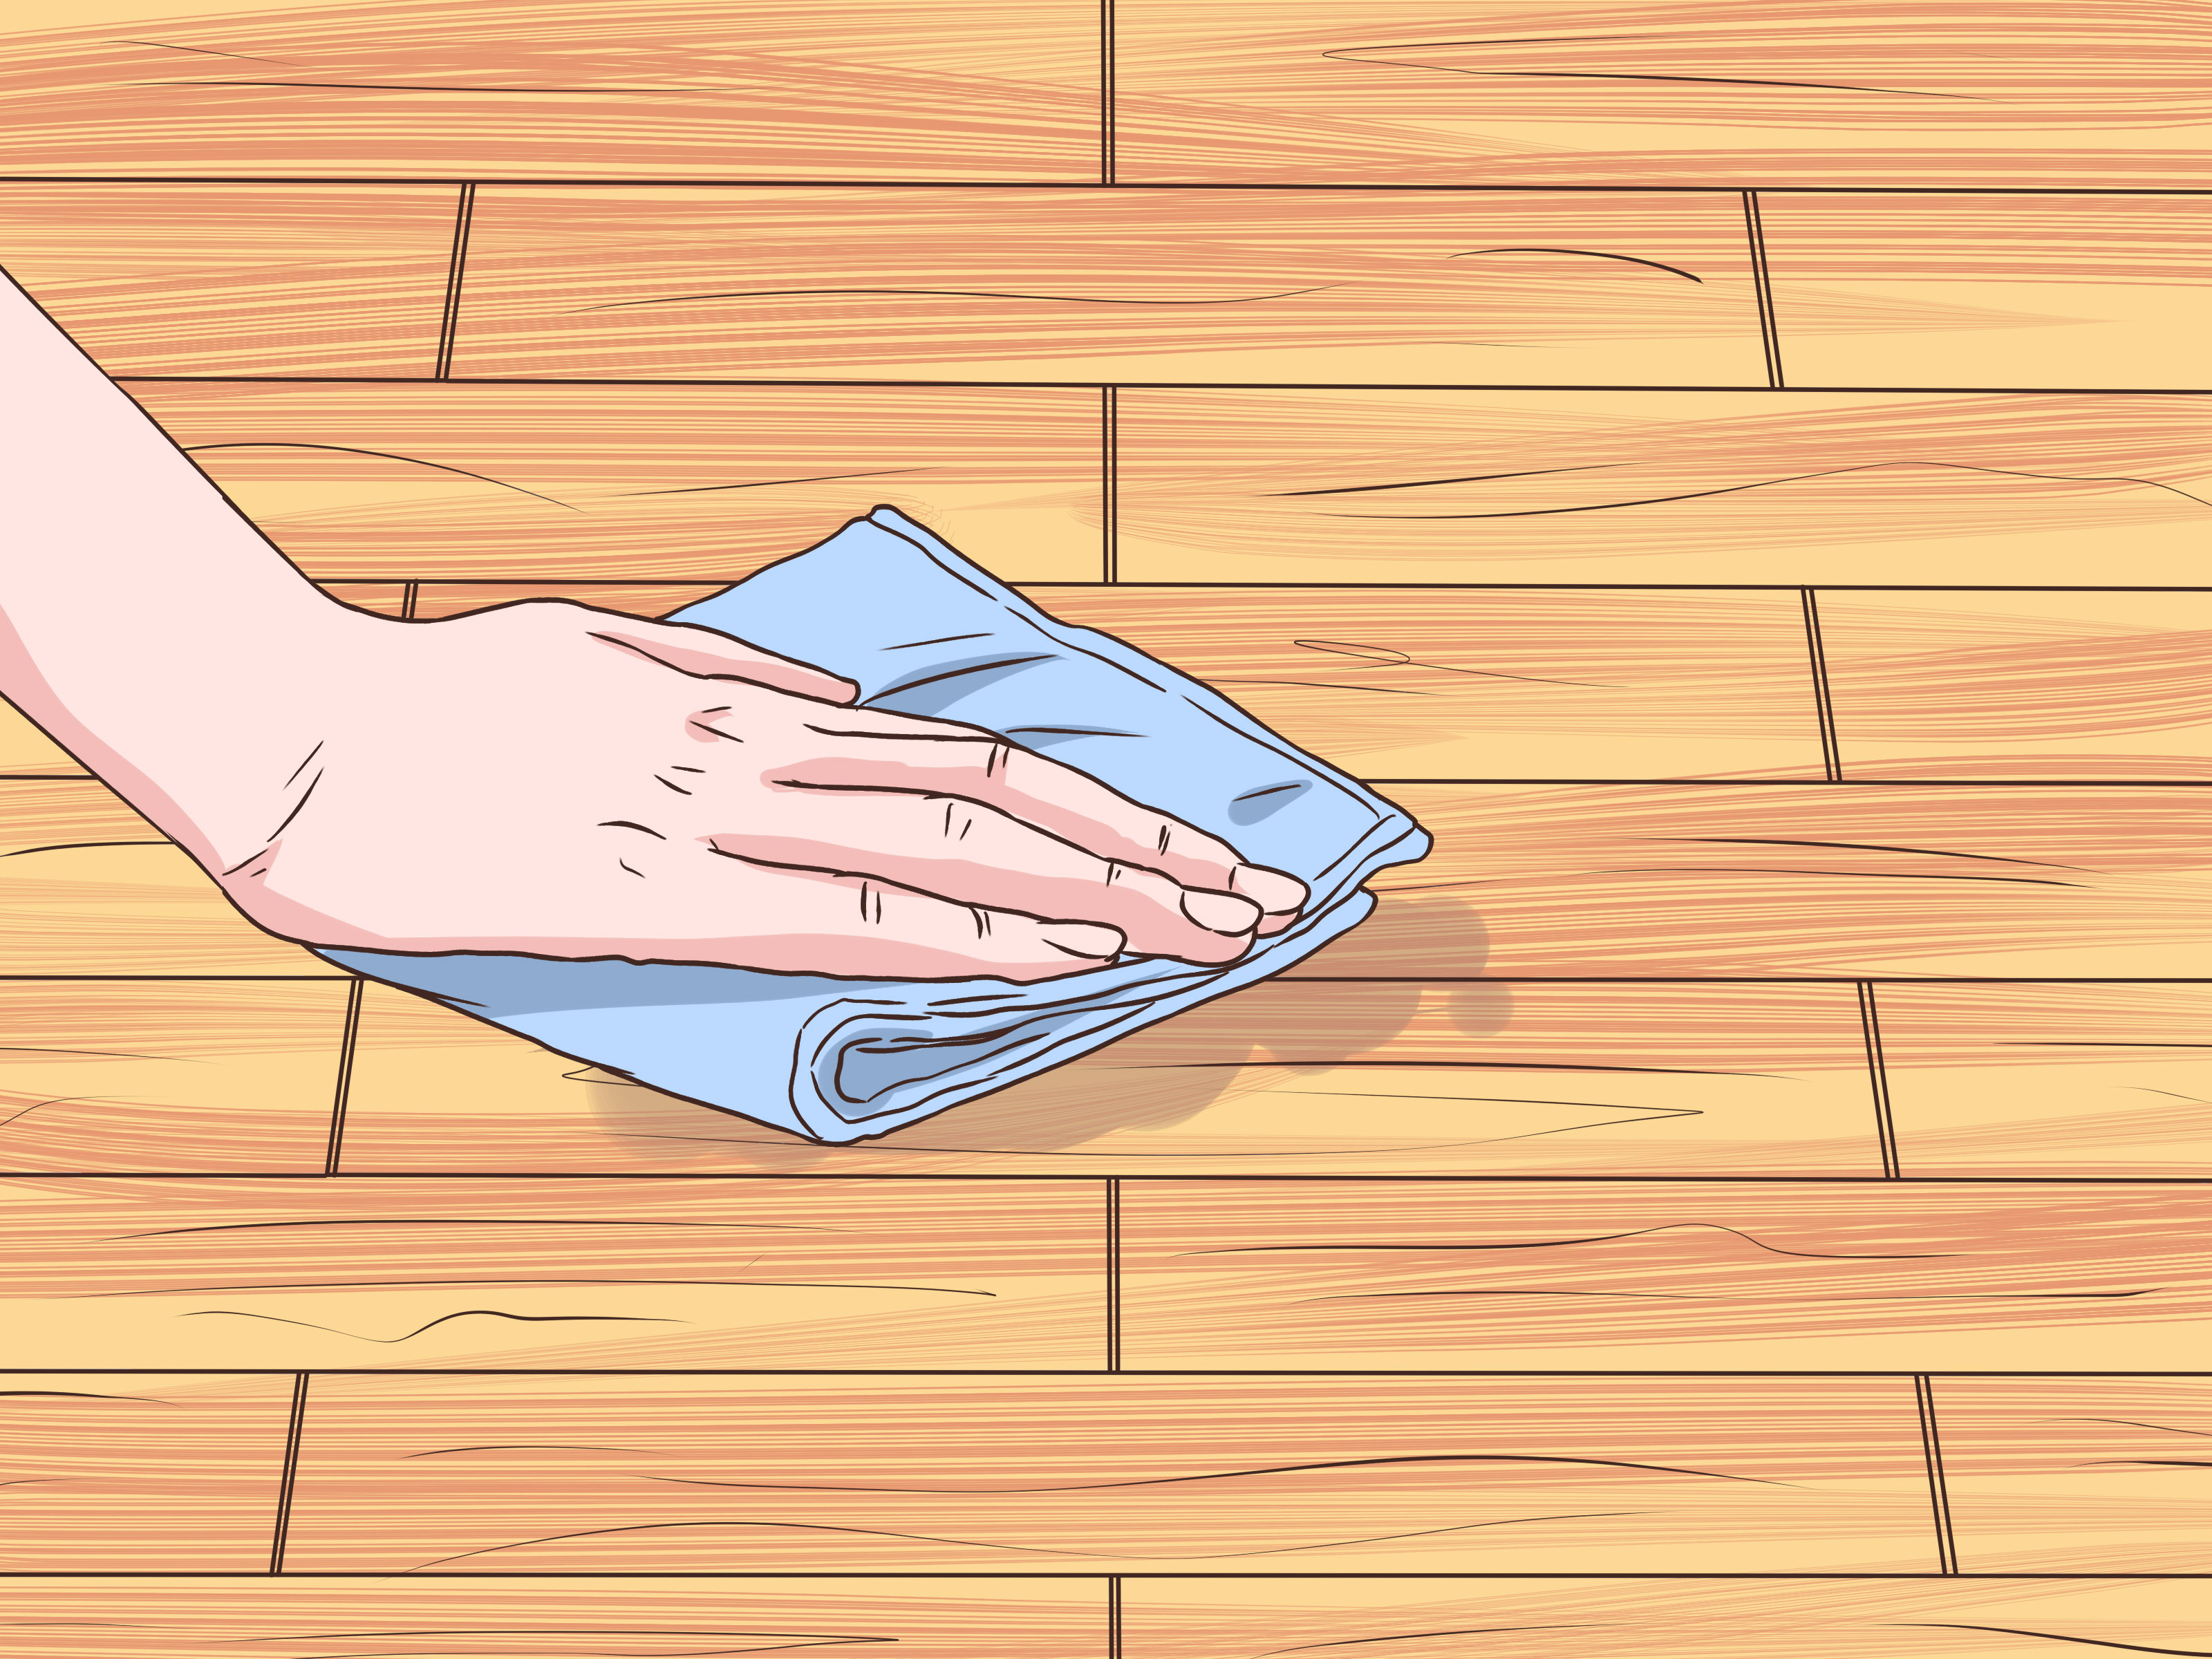 cheap hardwood flooring near me of how to clean sticky hardwood floors 9 steps with pictures with regard to clean sticky hardwood floors step 9